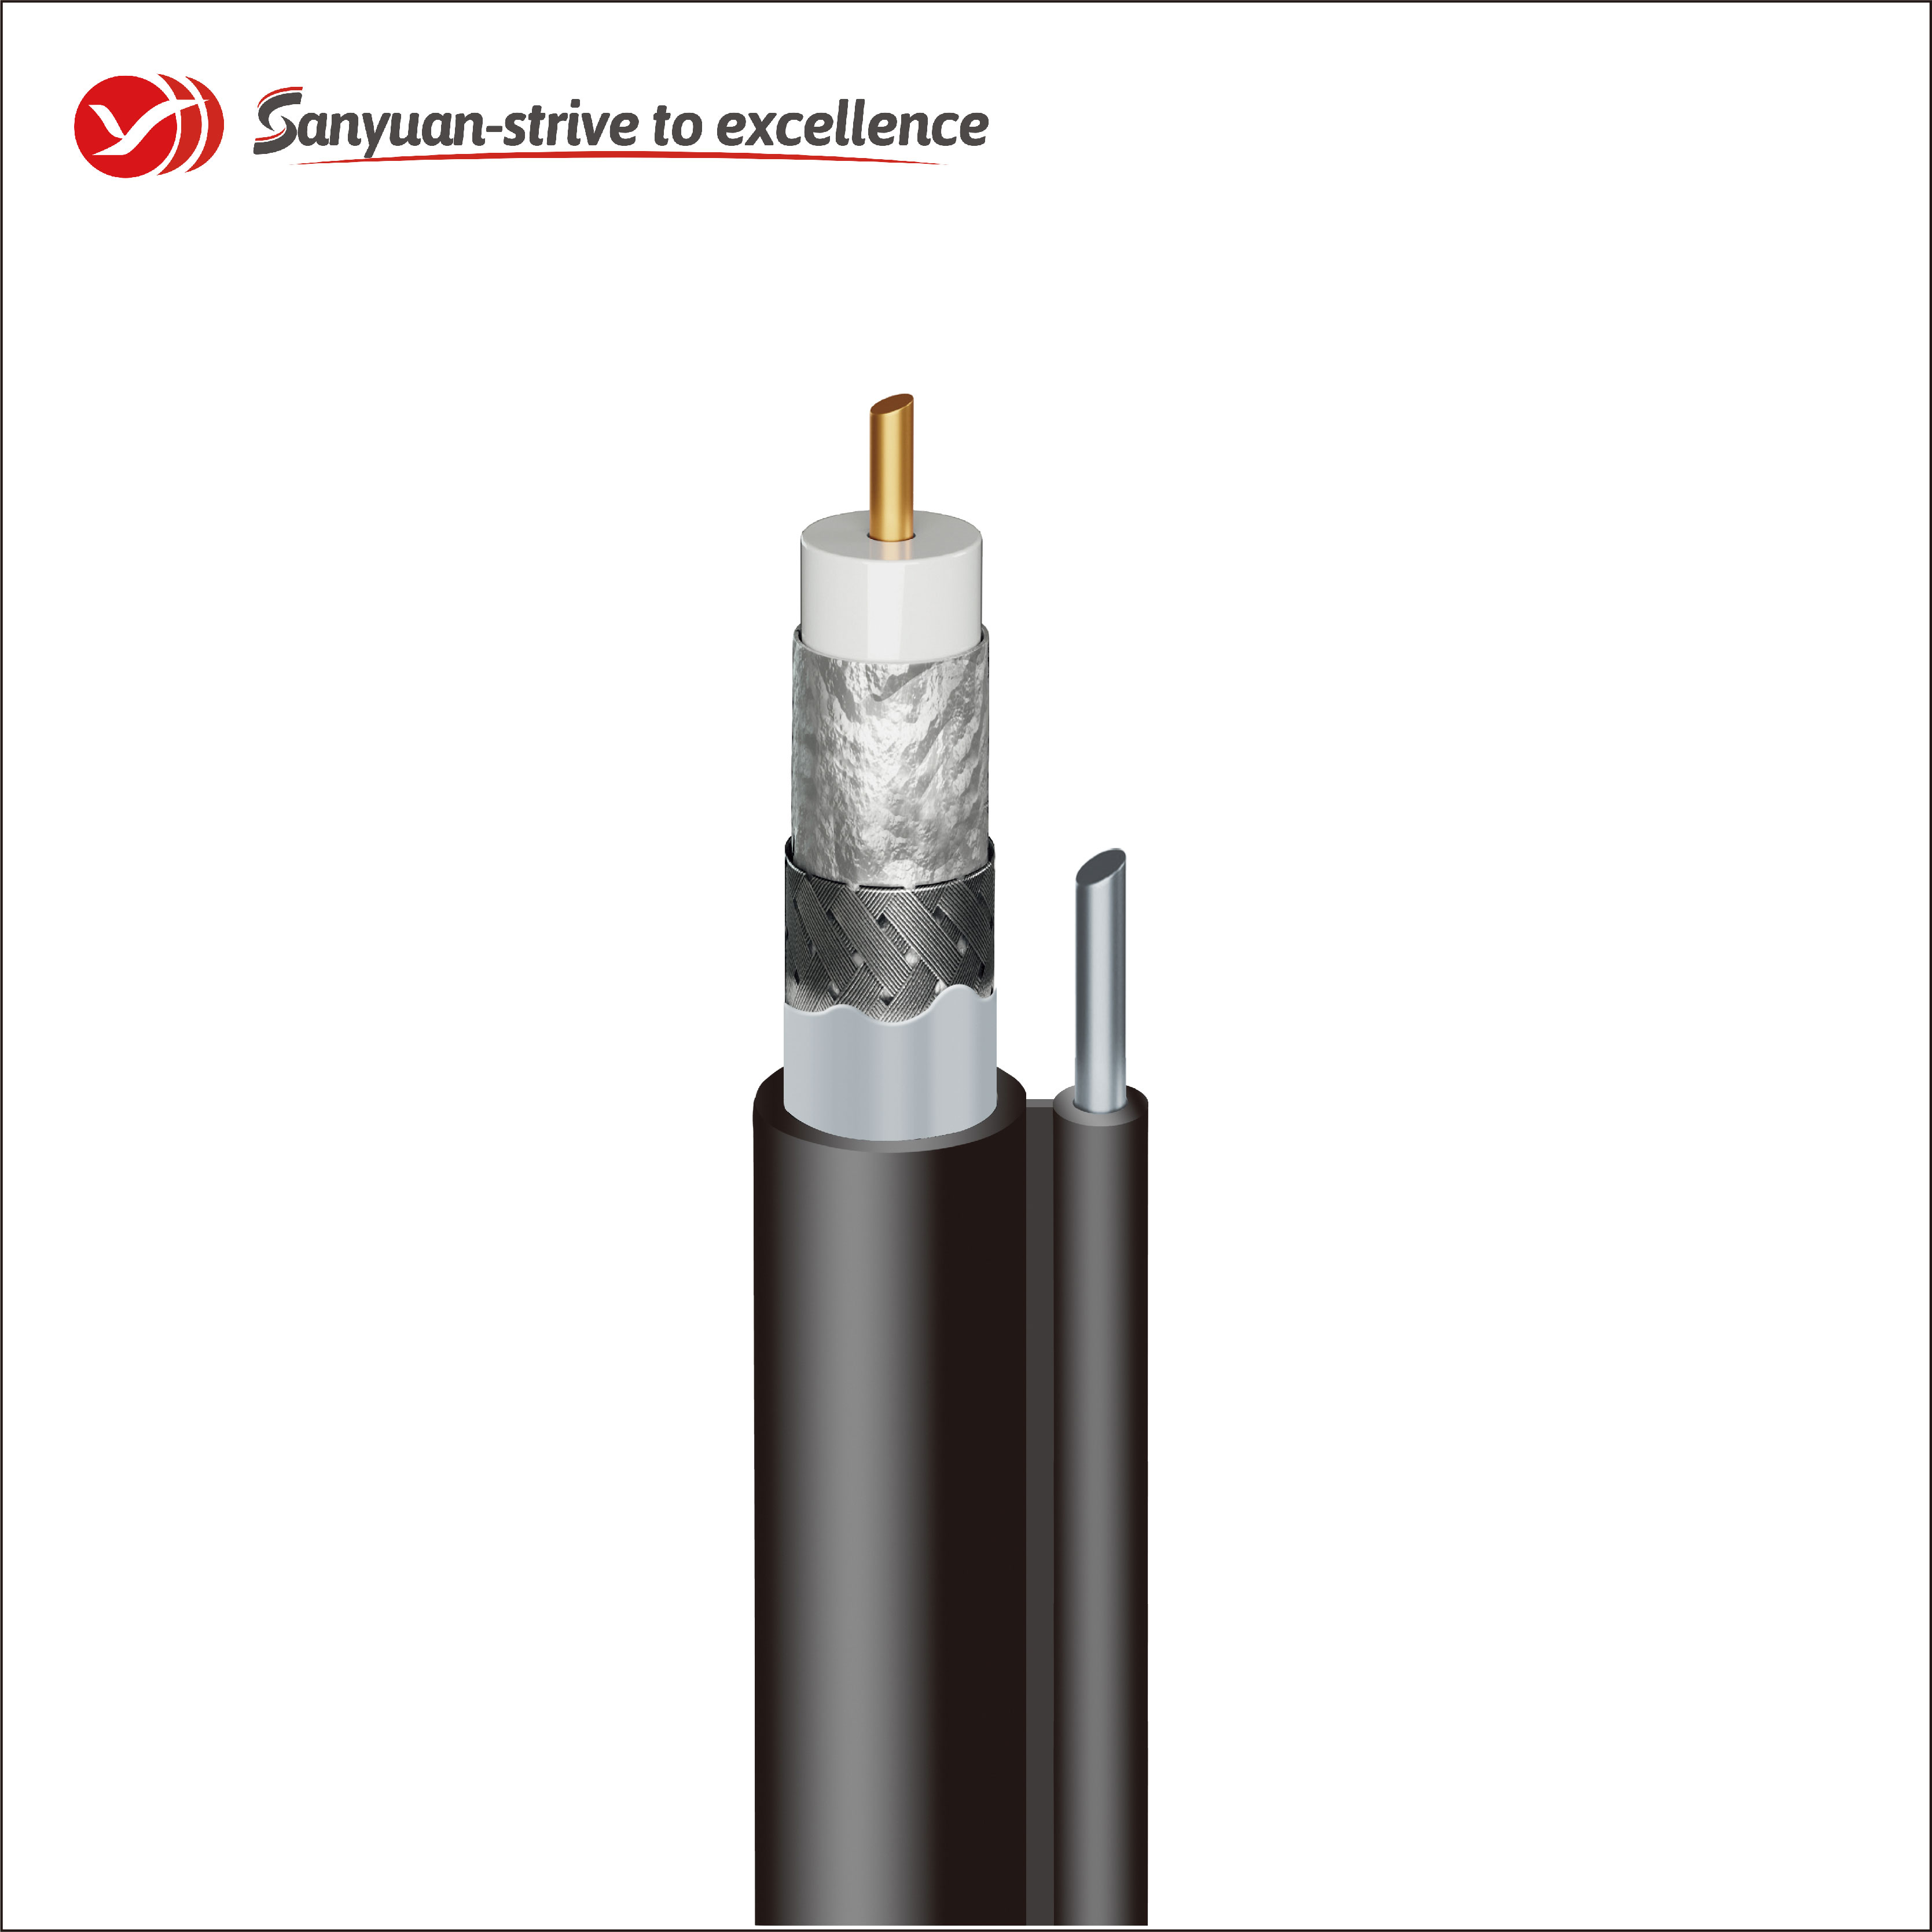 SanYuan cable coaxial 75 ohm suppliers for HDTV antennas-1